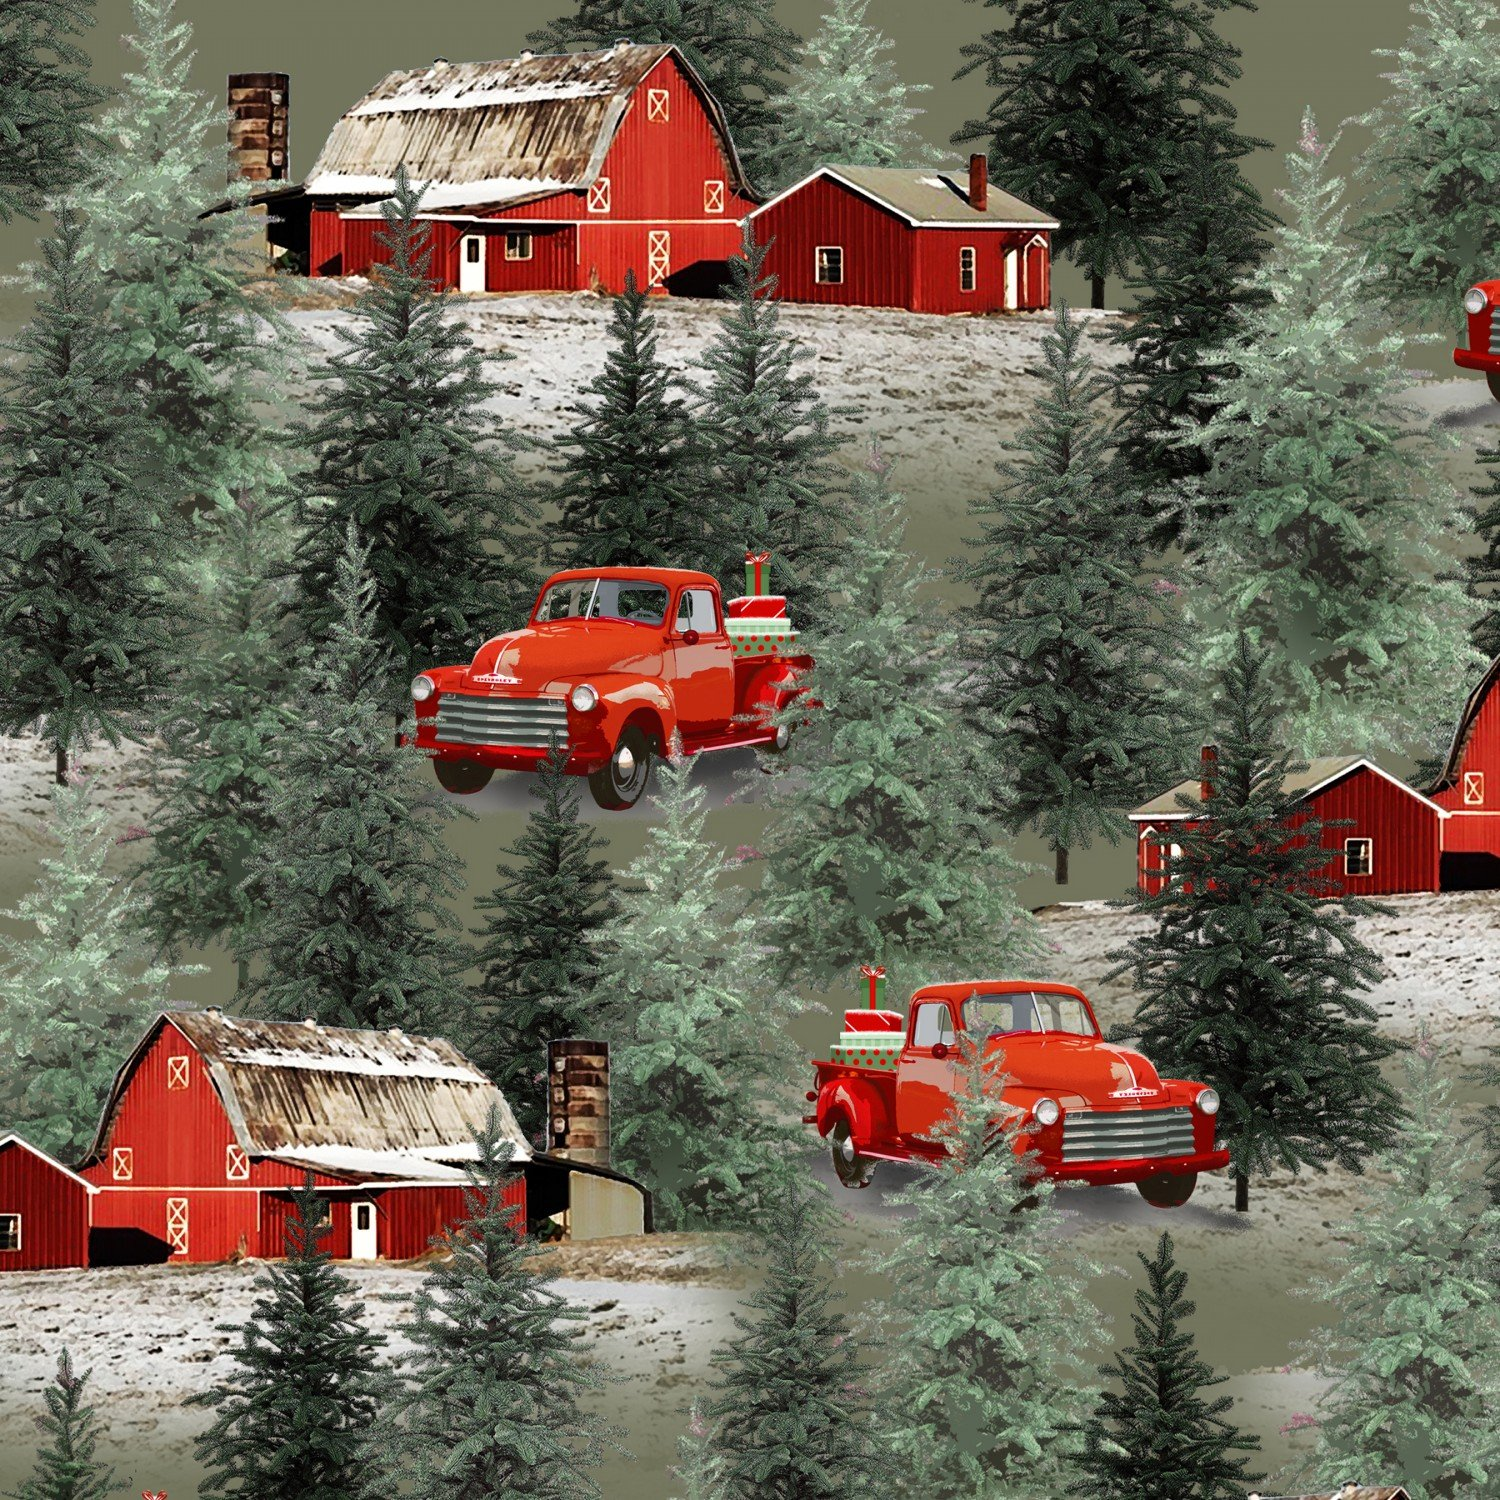 Holiday Homestead Red Truck with Pine Trees